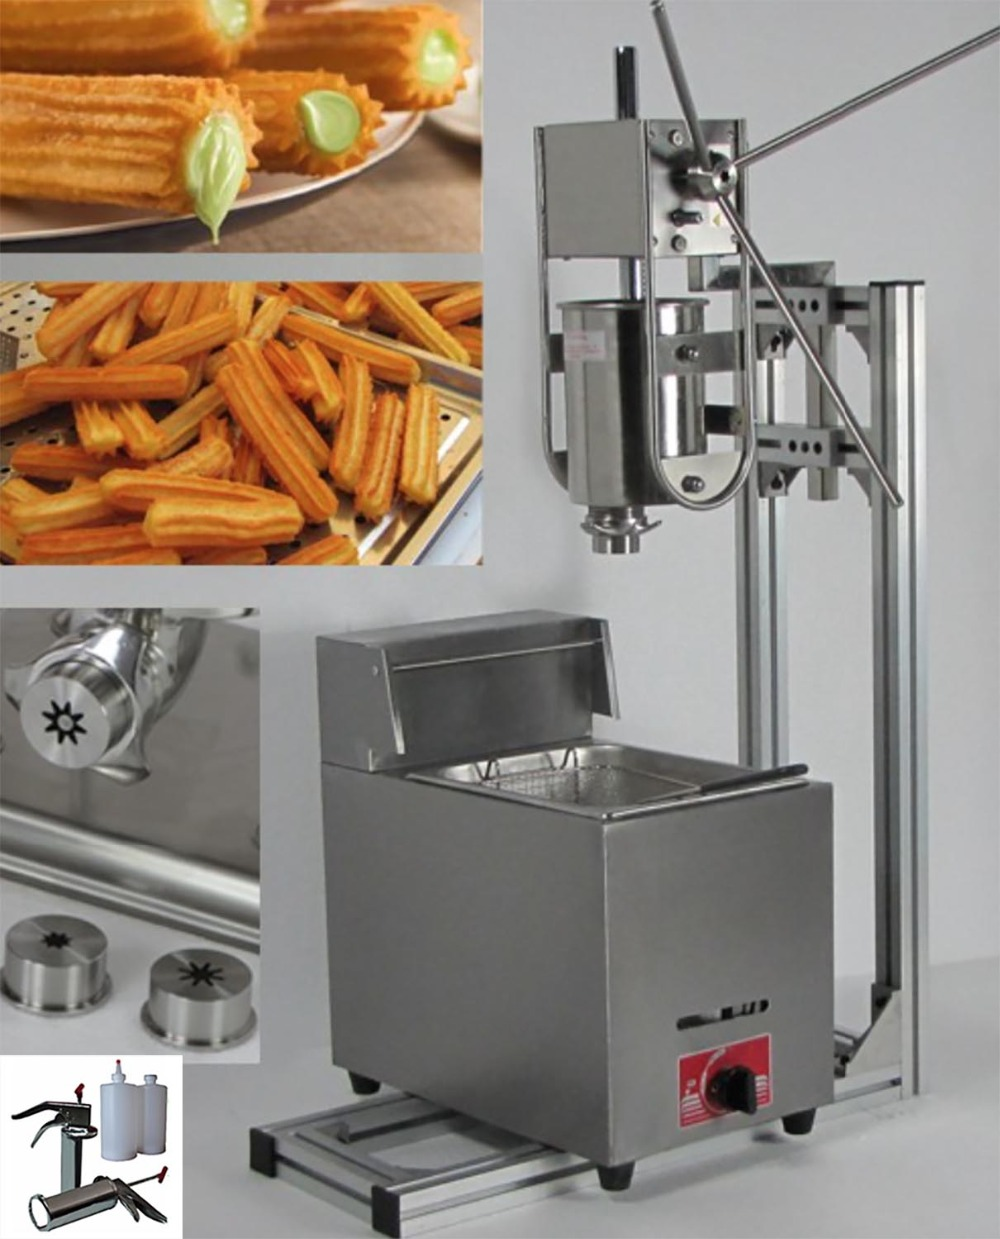 4 in 1 3L Manual Churros Maker + Working Stand + 6L Gas Fryer + 700ml Churros Filler for small business 2l manual churros making machine for sale best quality churros maker